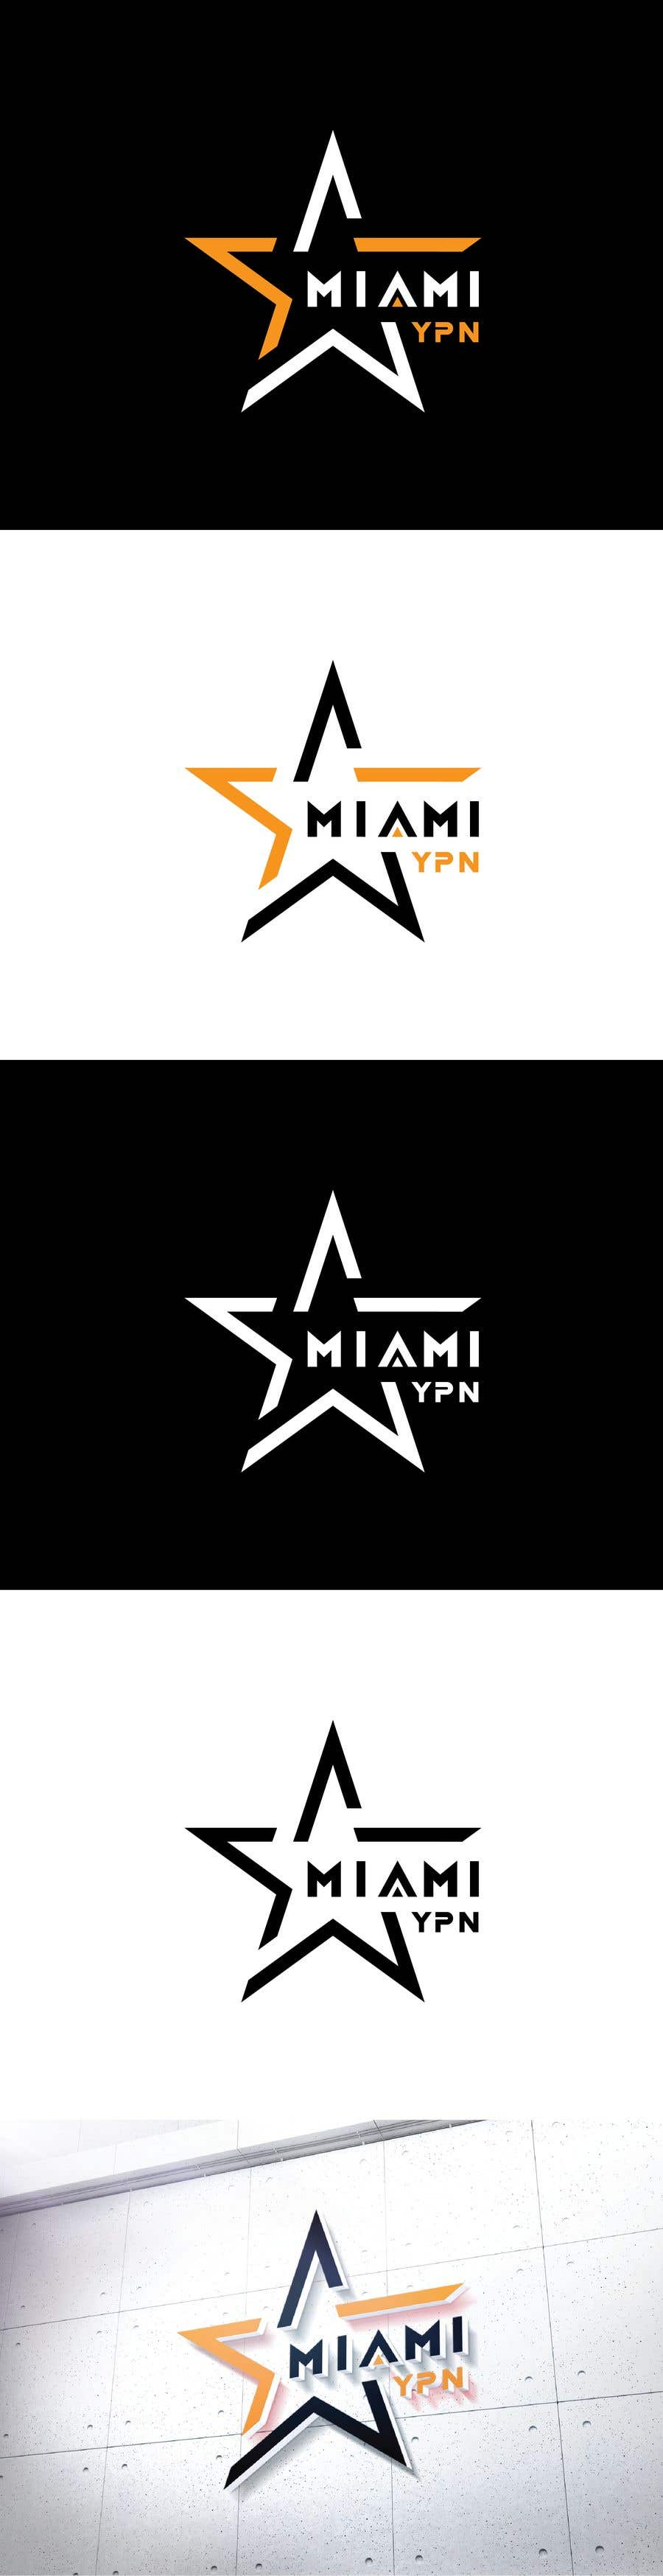 Contest Entry #295 for Miami YPN Logo